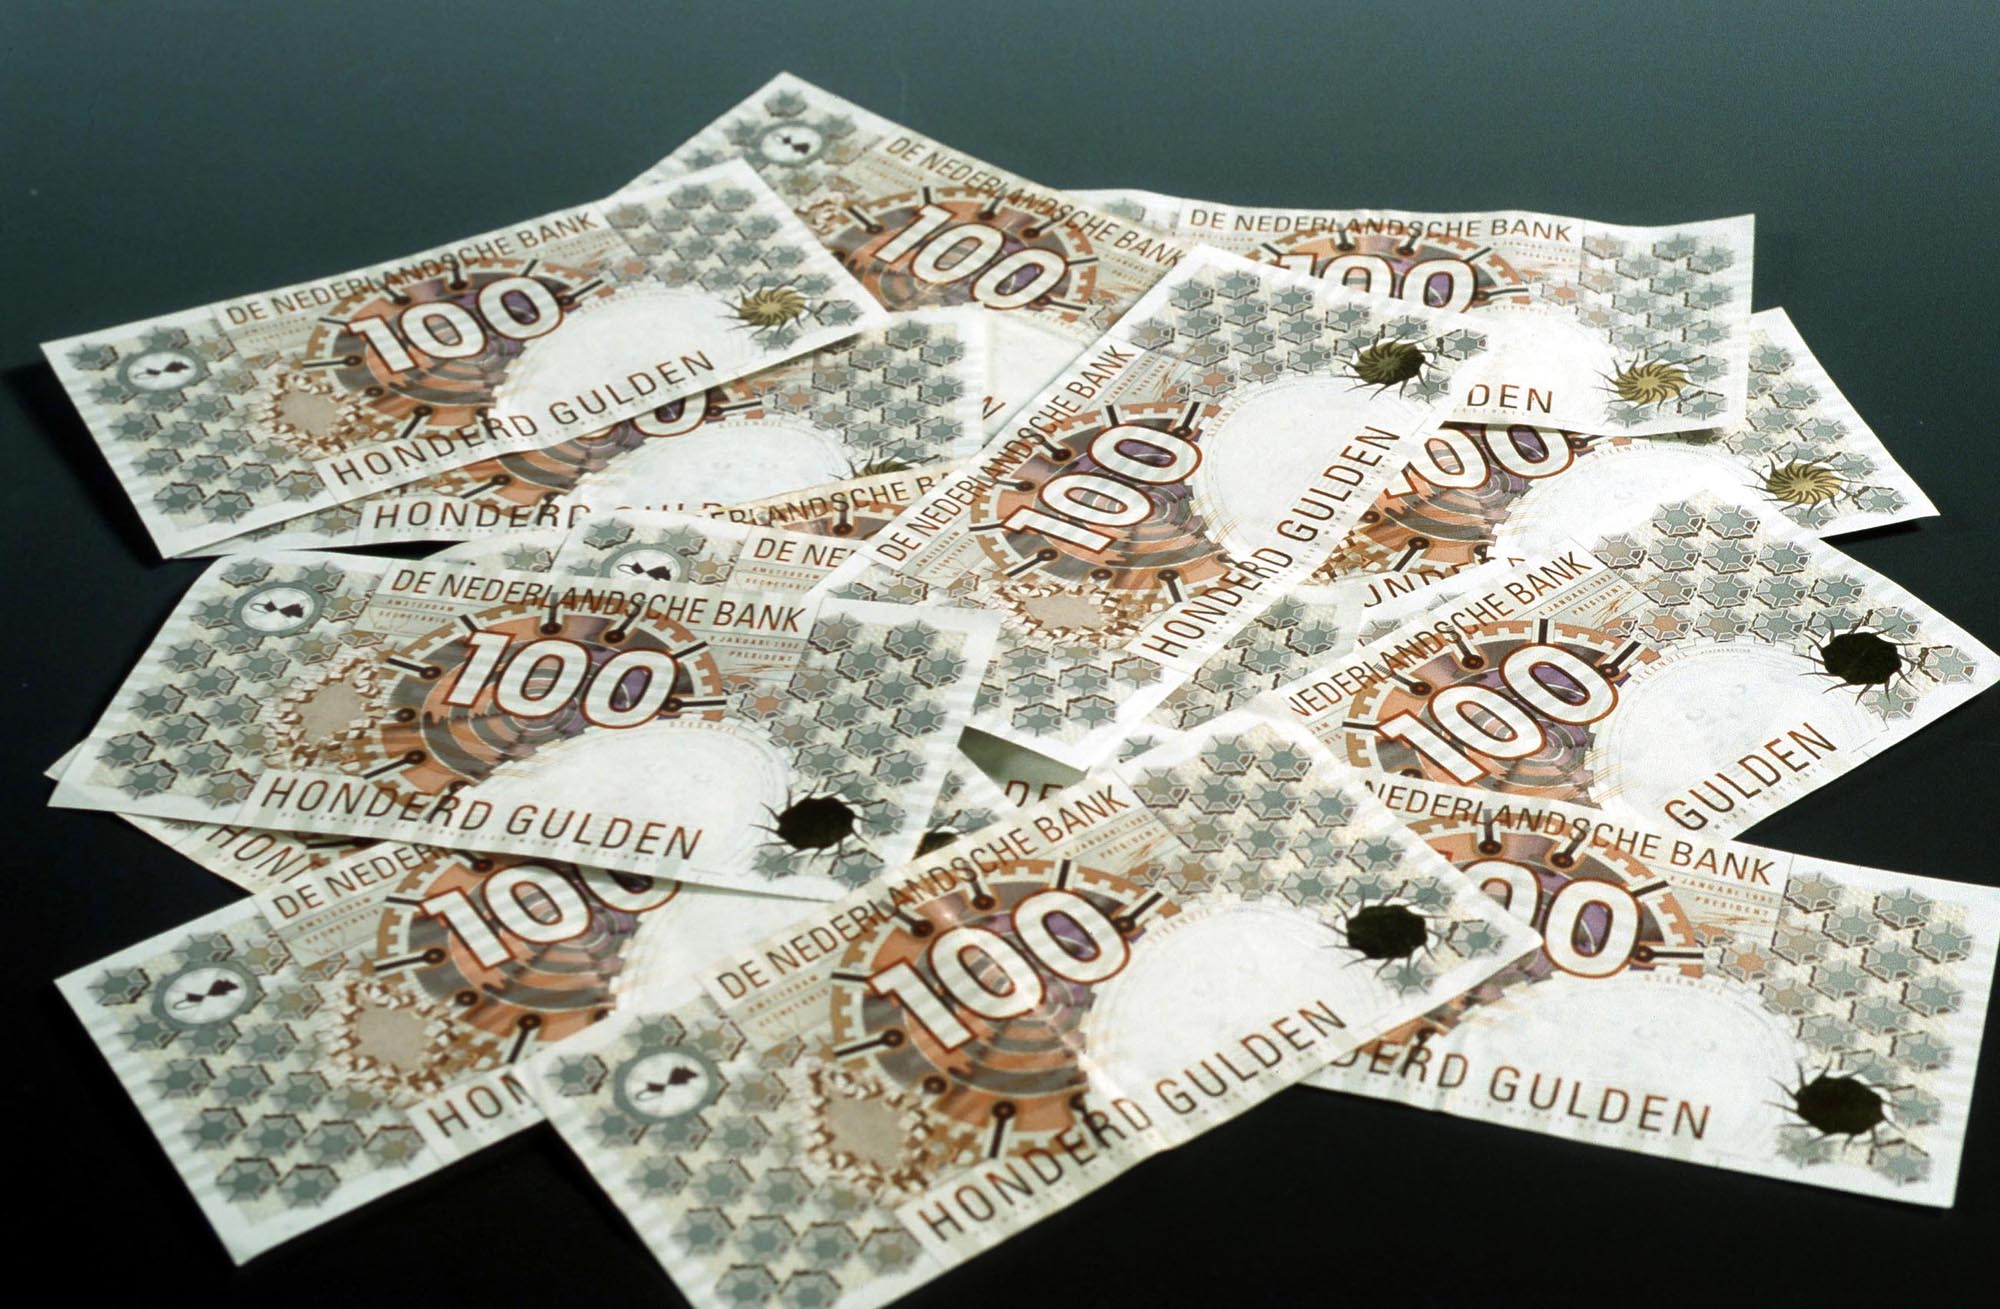 geld, money, bankbiljet, banknote, honderd, gulden, briefgeld, bills, papiergeld, Nederlands, Dutch, Netherlands